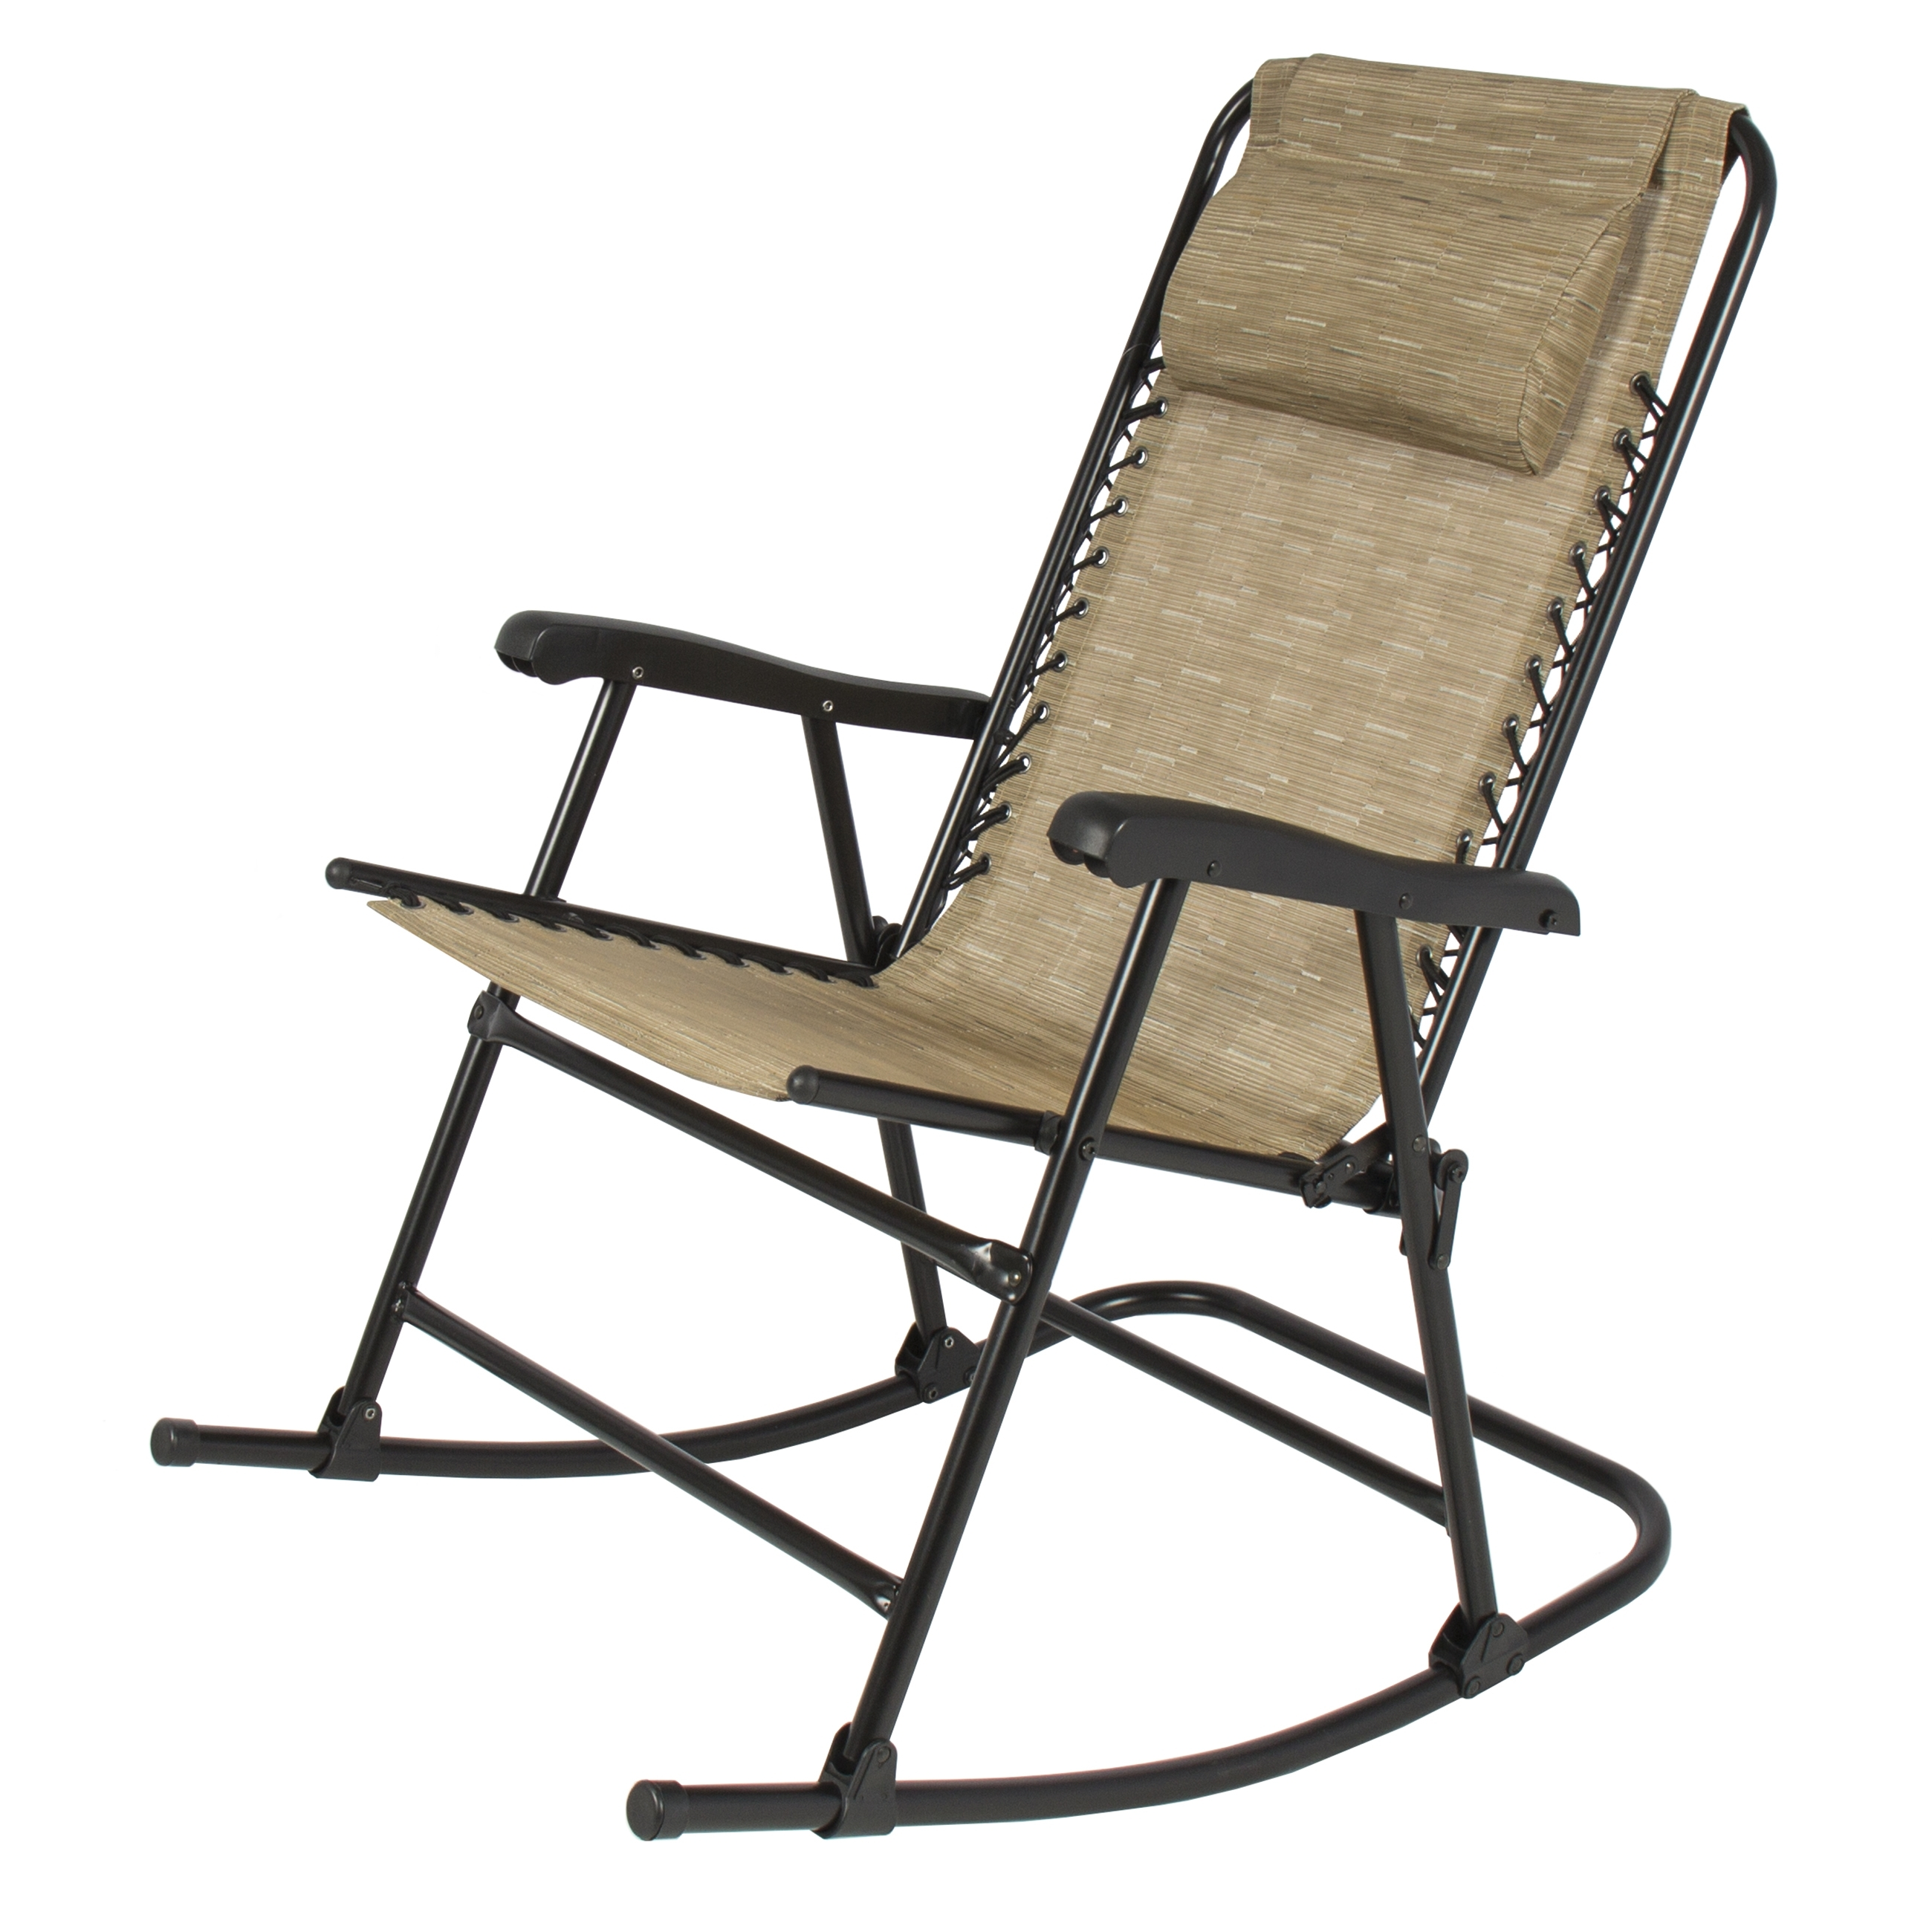 Fashionable Walmart Rocking Chairs Intended For Folding Rocking Chair Foldable Rocker Outdoor Patio Furniture Beige (View 7 of 15)